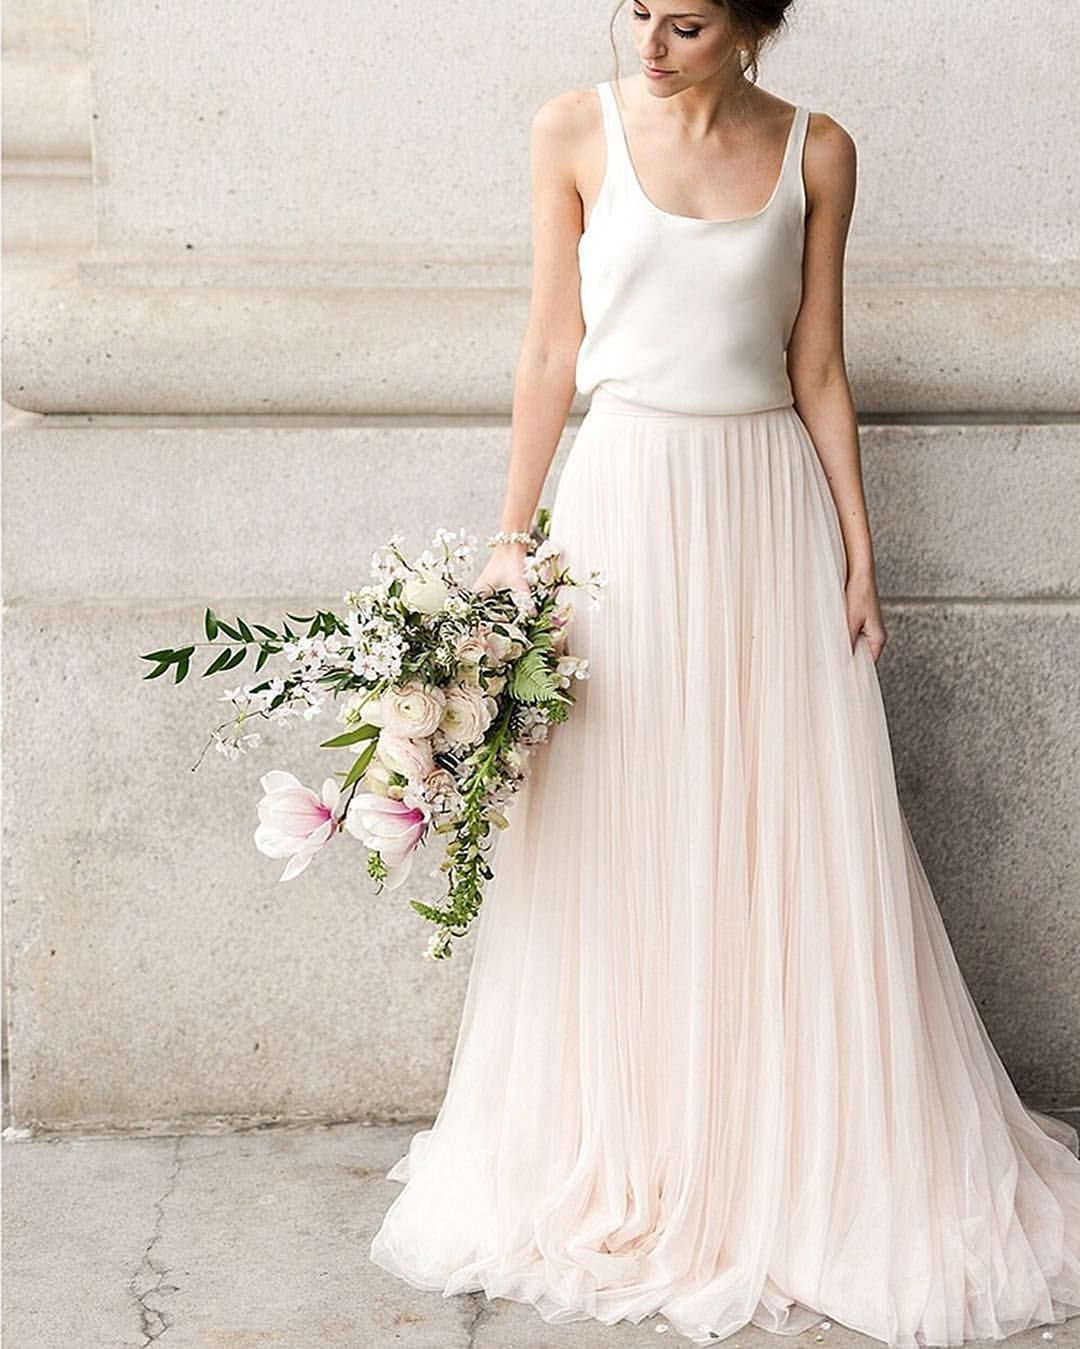 20 Amazing Casual Wedding Dresses For Summer Style Summer Wedding Dress Casual Wedding Dress Casual Wedding